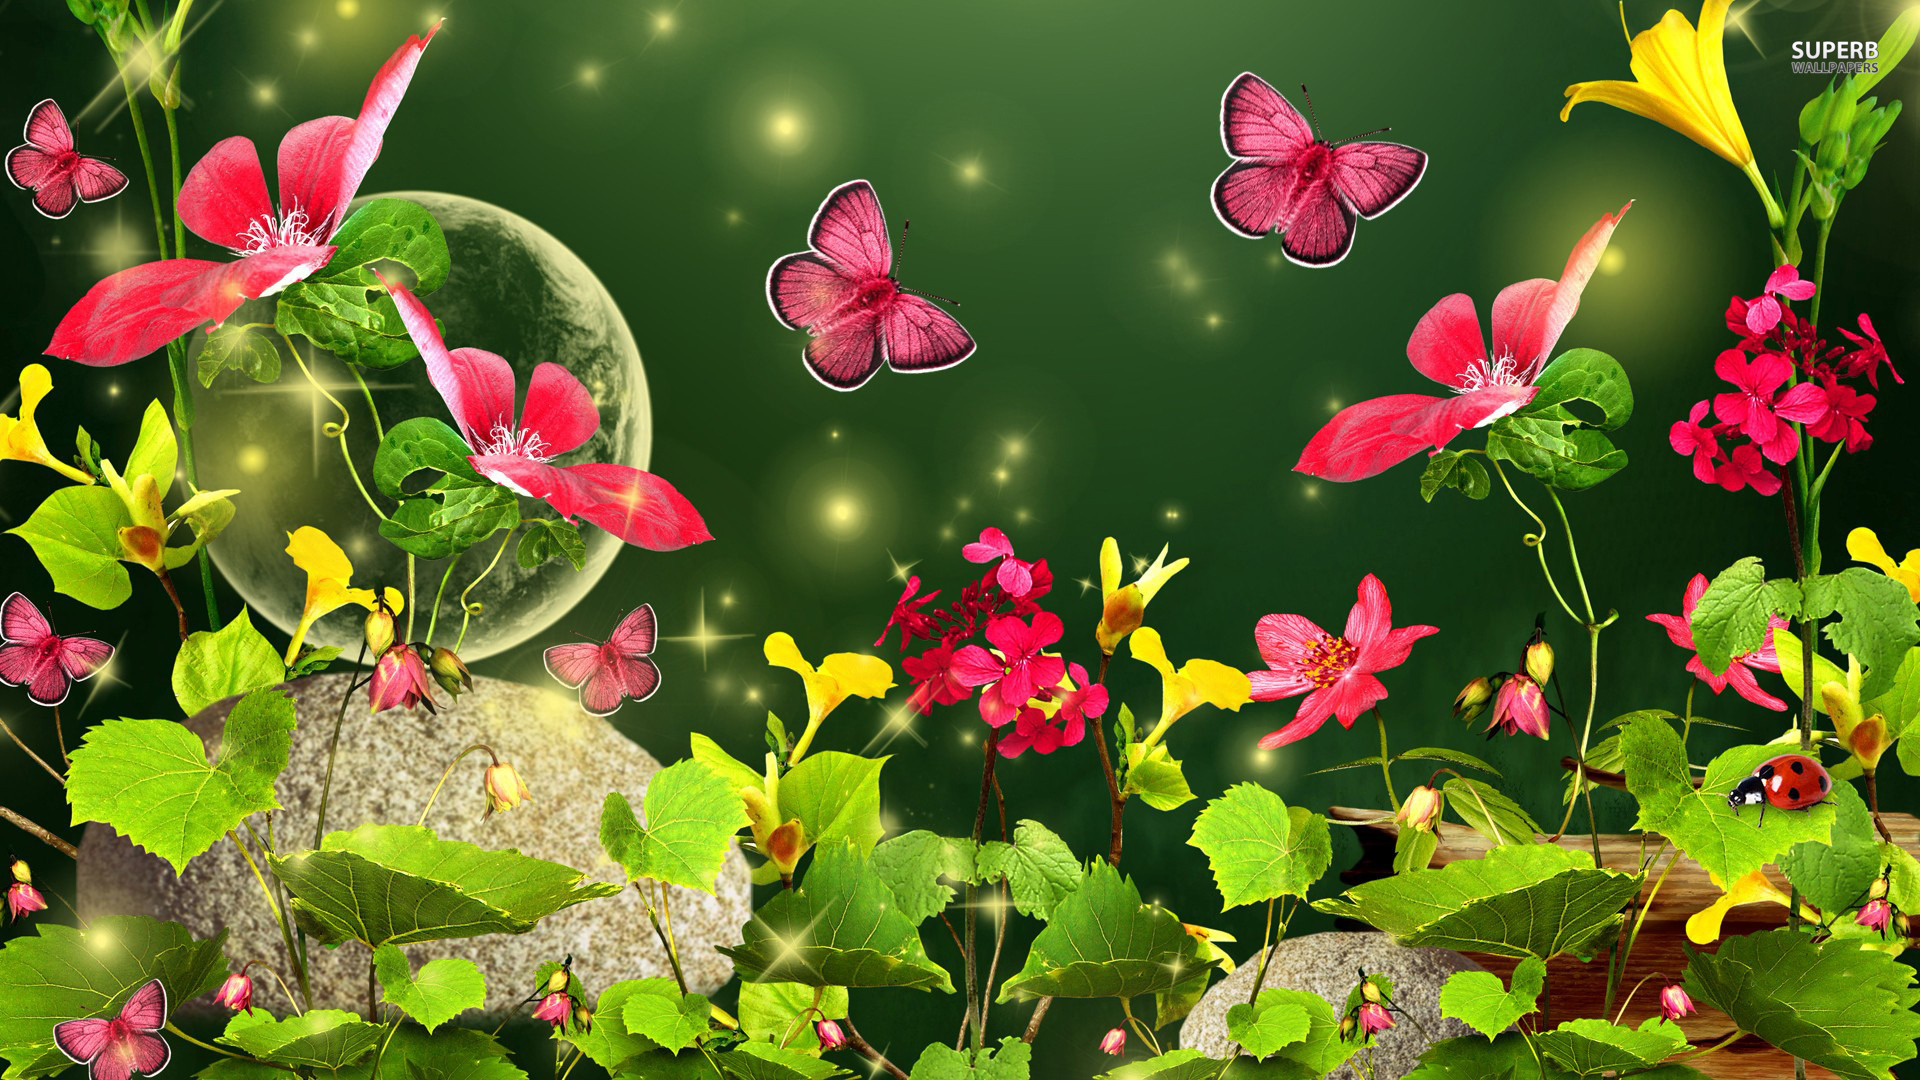 Butterflies images Awesome Butterflies HD wallpaper and background 1920x1080